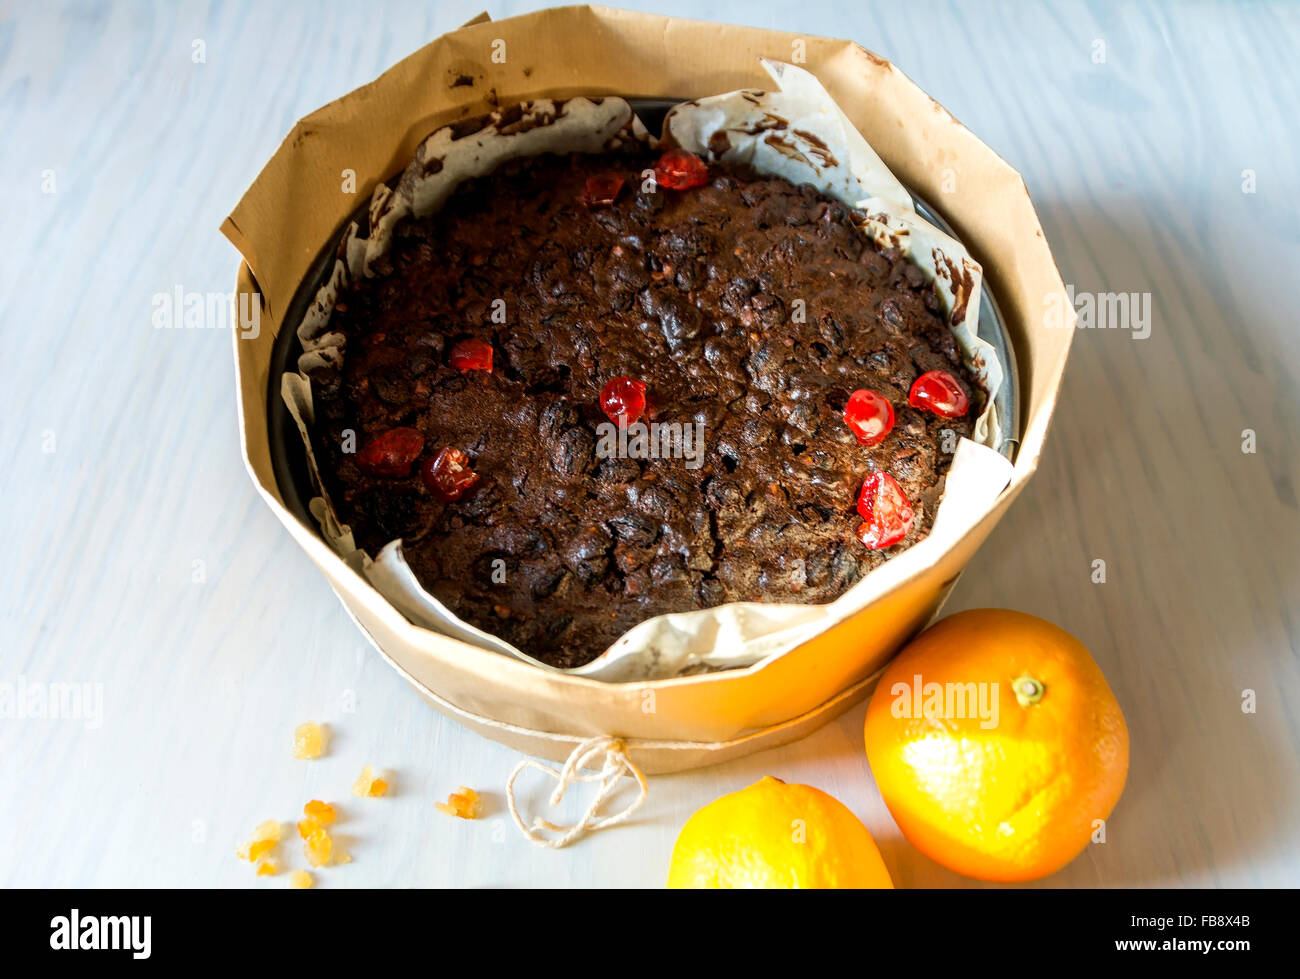 Christmas cake has to be baked for hours so it is wrapped in brown paper to protect from burning. - Stock Image